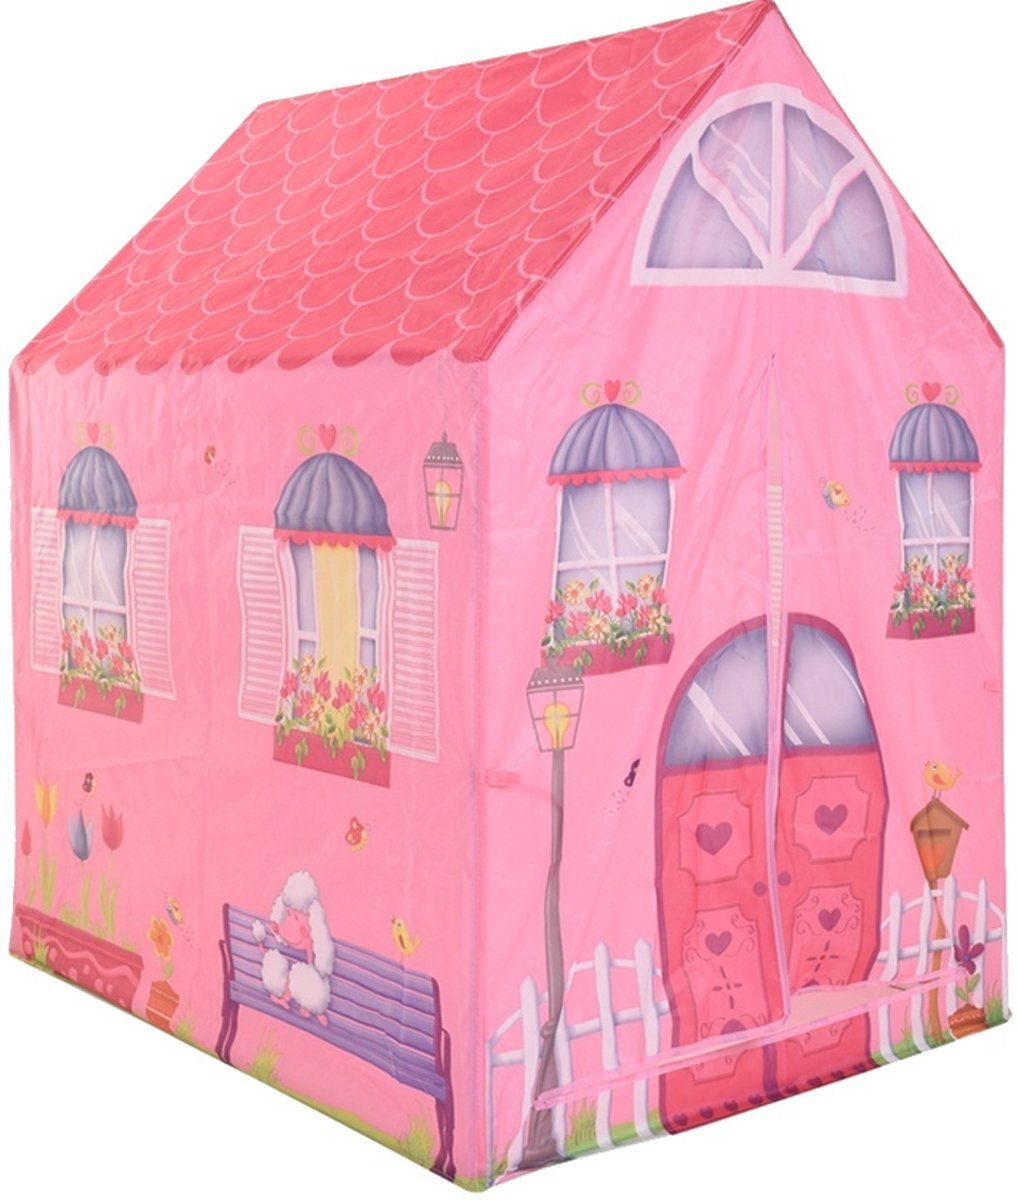 Free And Easy   Roze Huis 102 Cm Roze